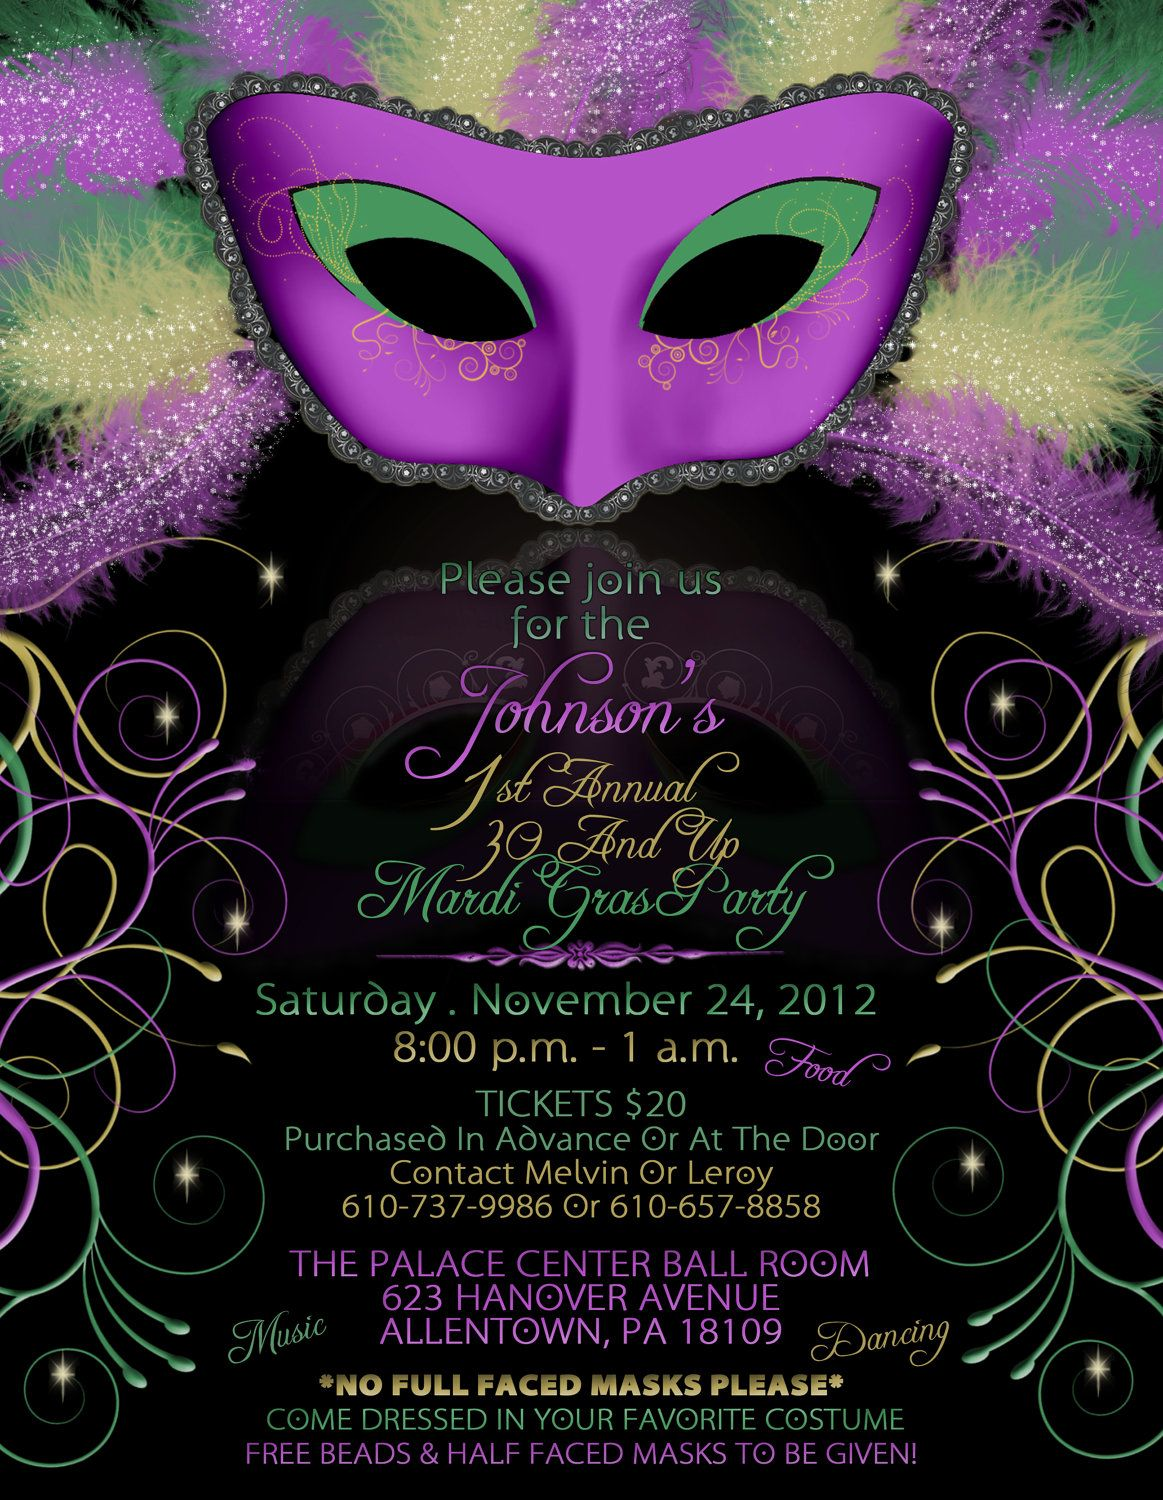 mardi gras birthday party invitations | mardi gra | pinterest, Party invitations